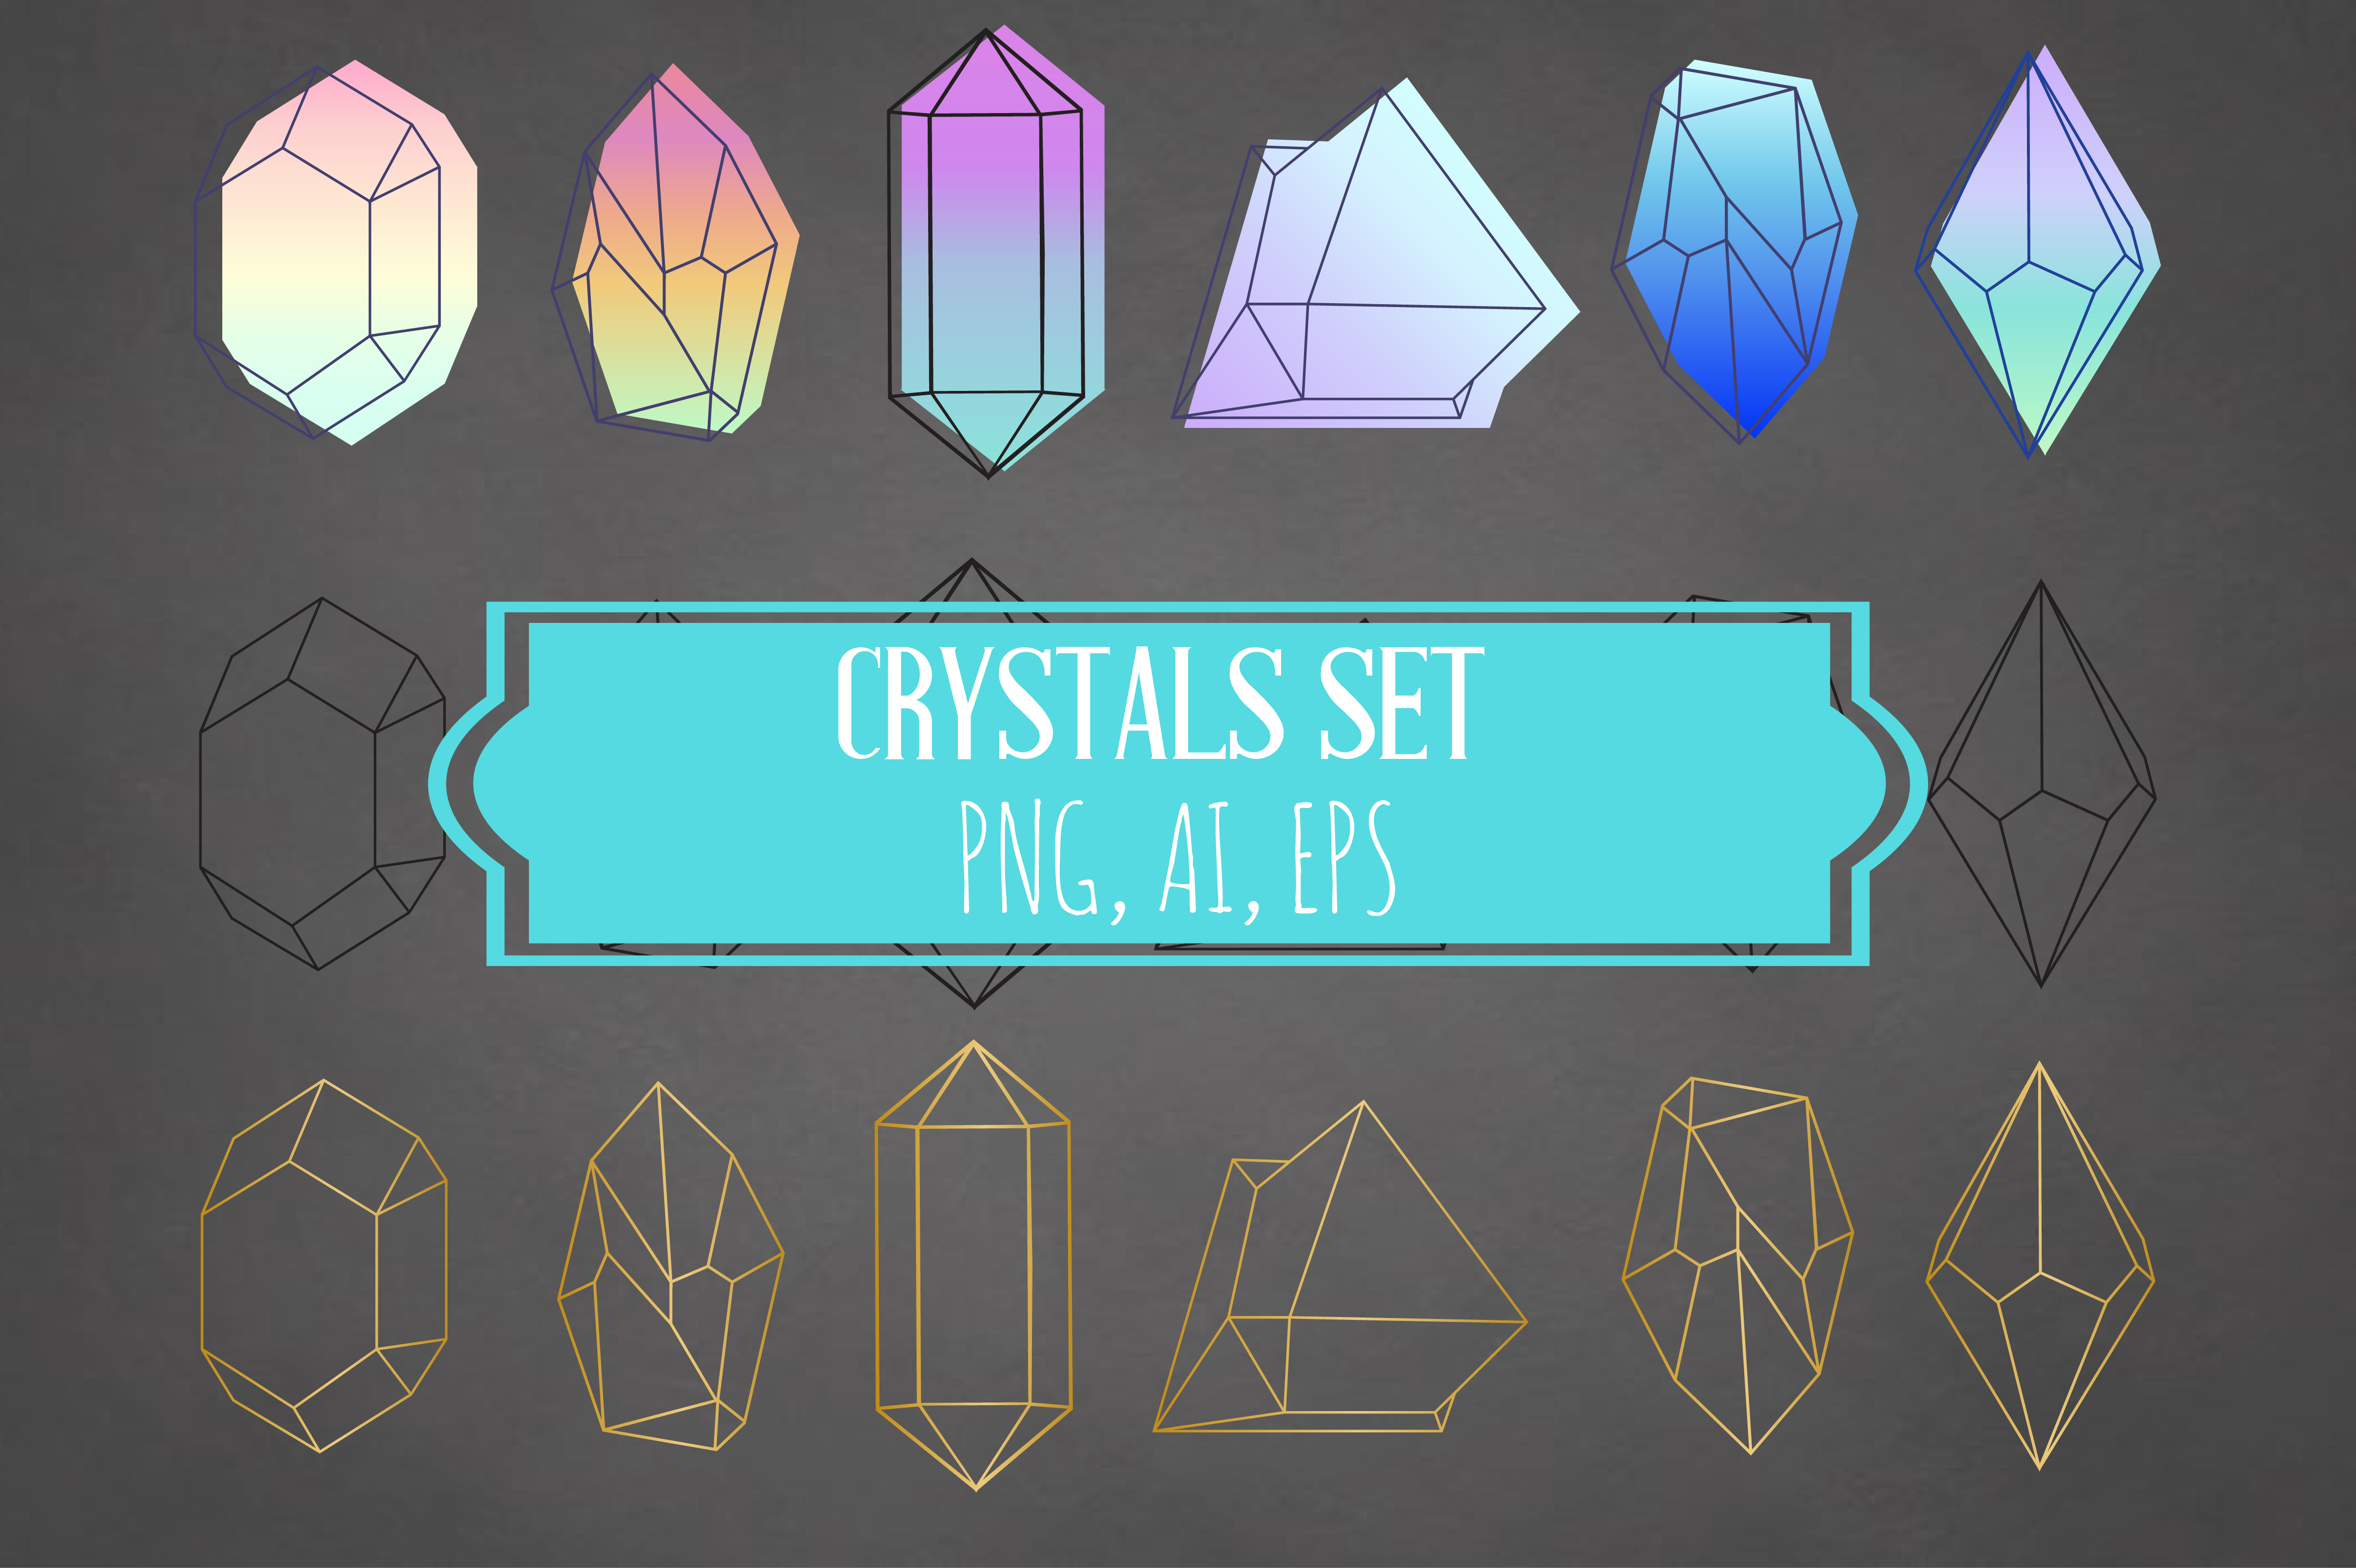 Crystals Set Neon Gold Black - Ai Eps Png example image 1